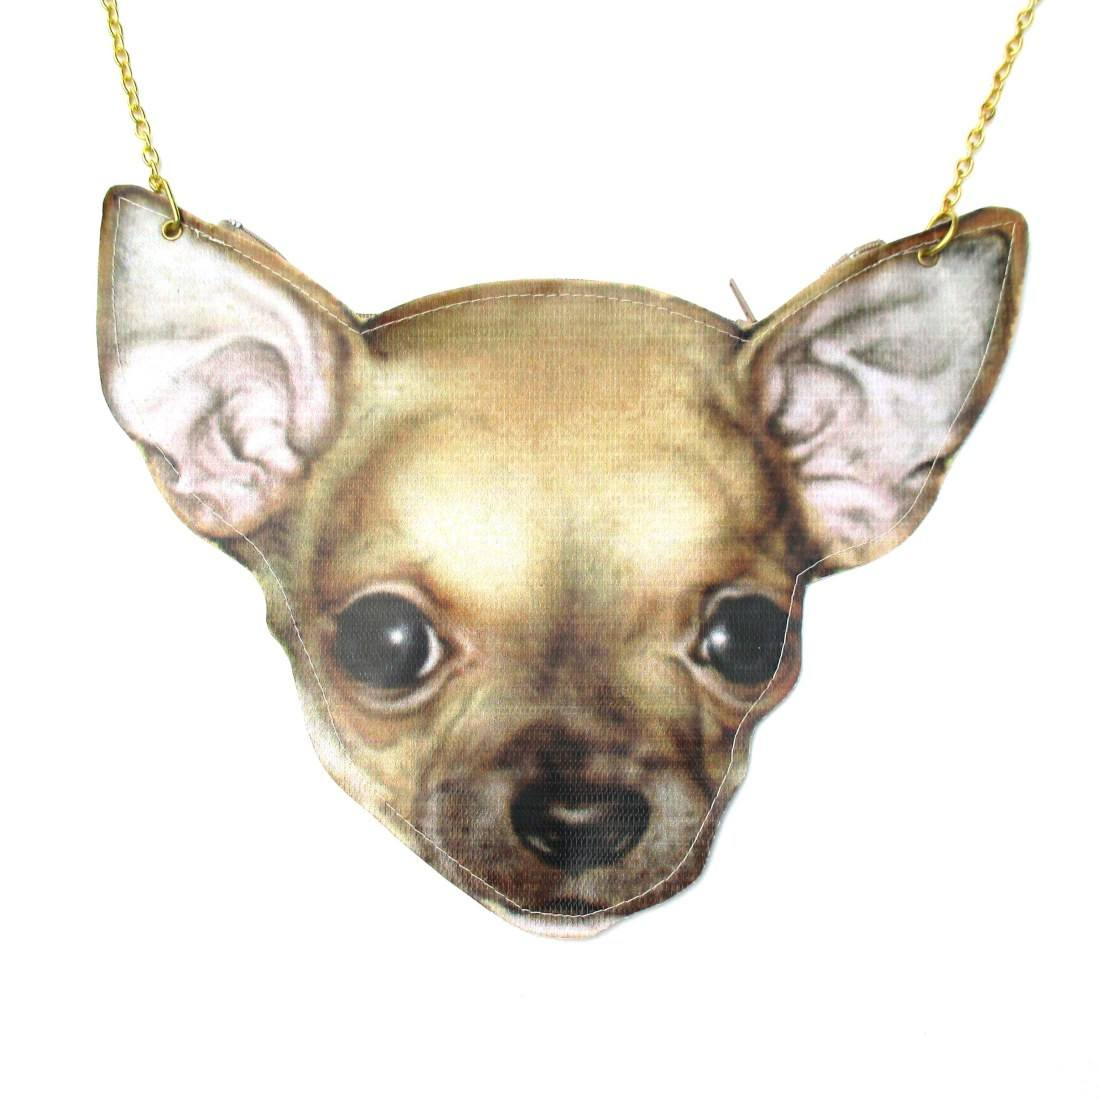 Chihuahua Puppy Head Shaped Vinyl Cross Body Bag for Dog Lovers